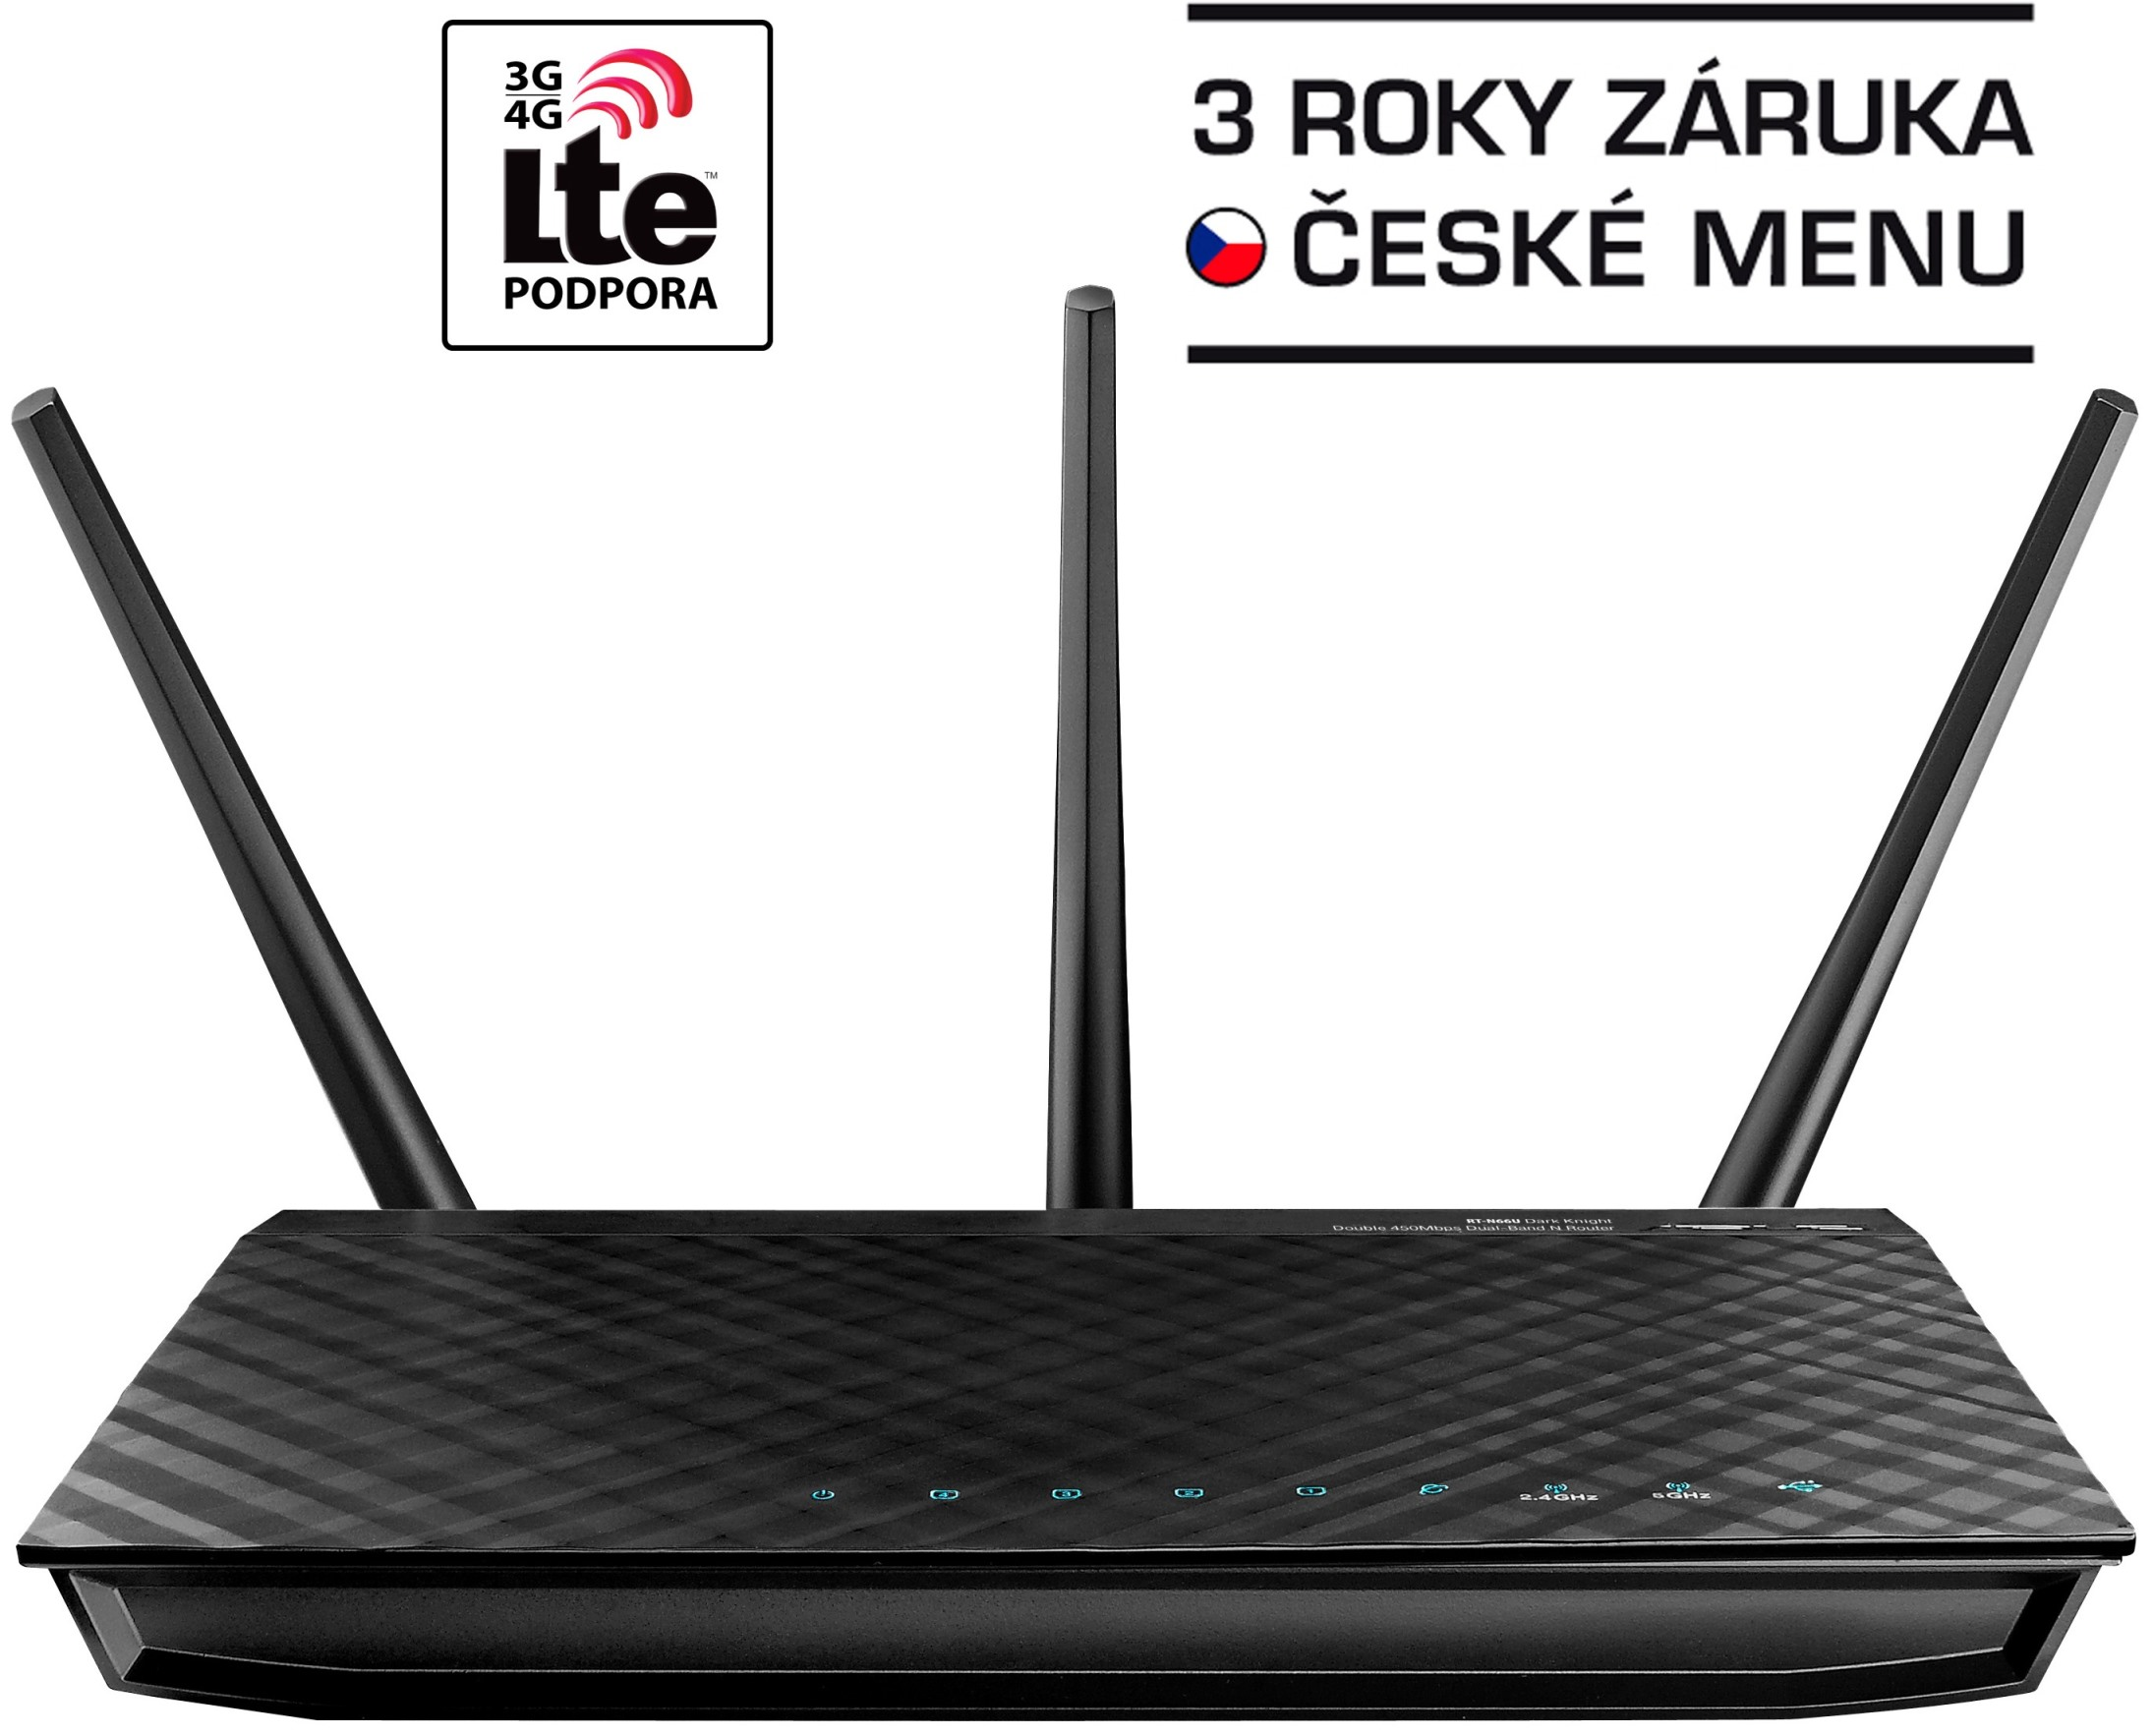 ASUS RT-N66U, Dvoupásmový Wireless-N900 gigabitový router, Dual Band, AP, USB pro Media server, 3G/4G podpora, 802.11n